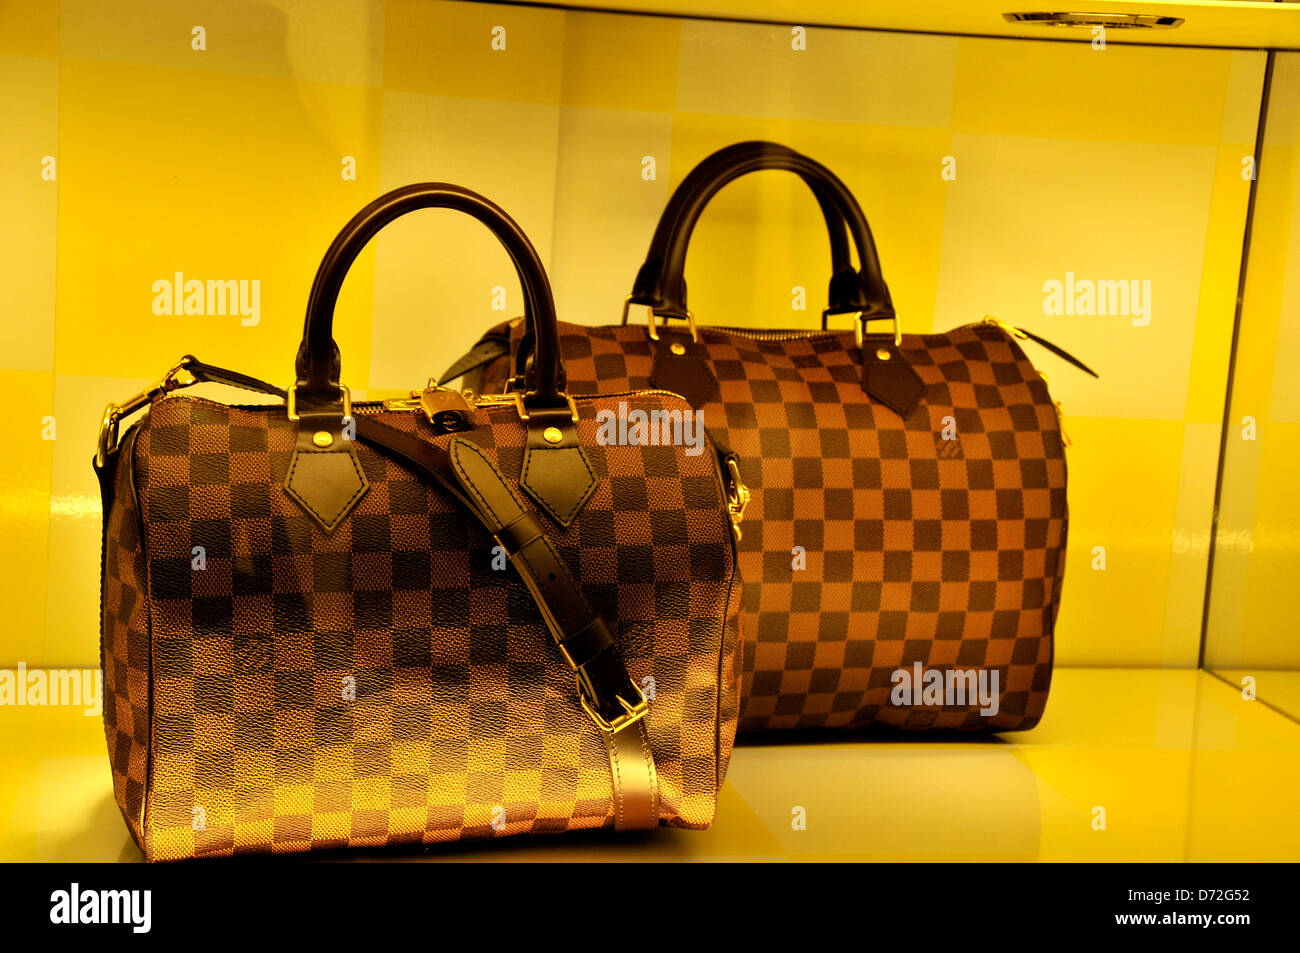 louis vuitton bags in dubai mall